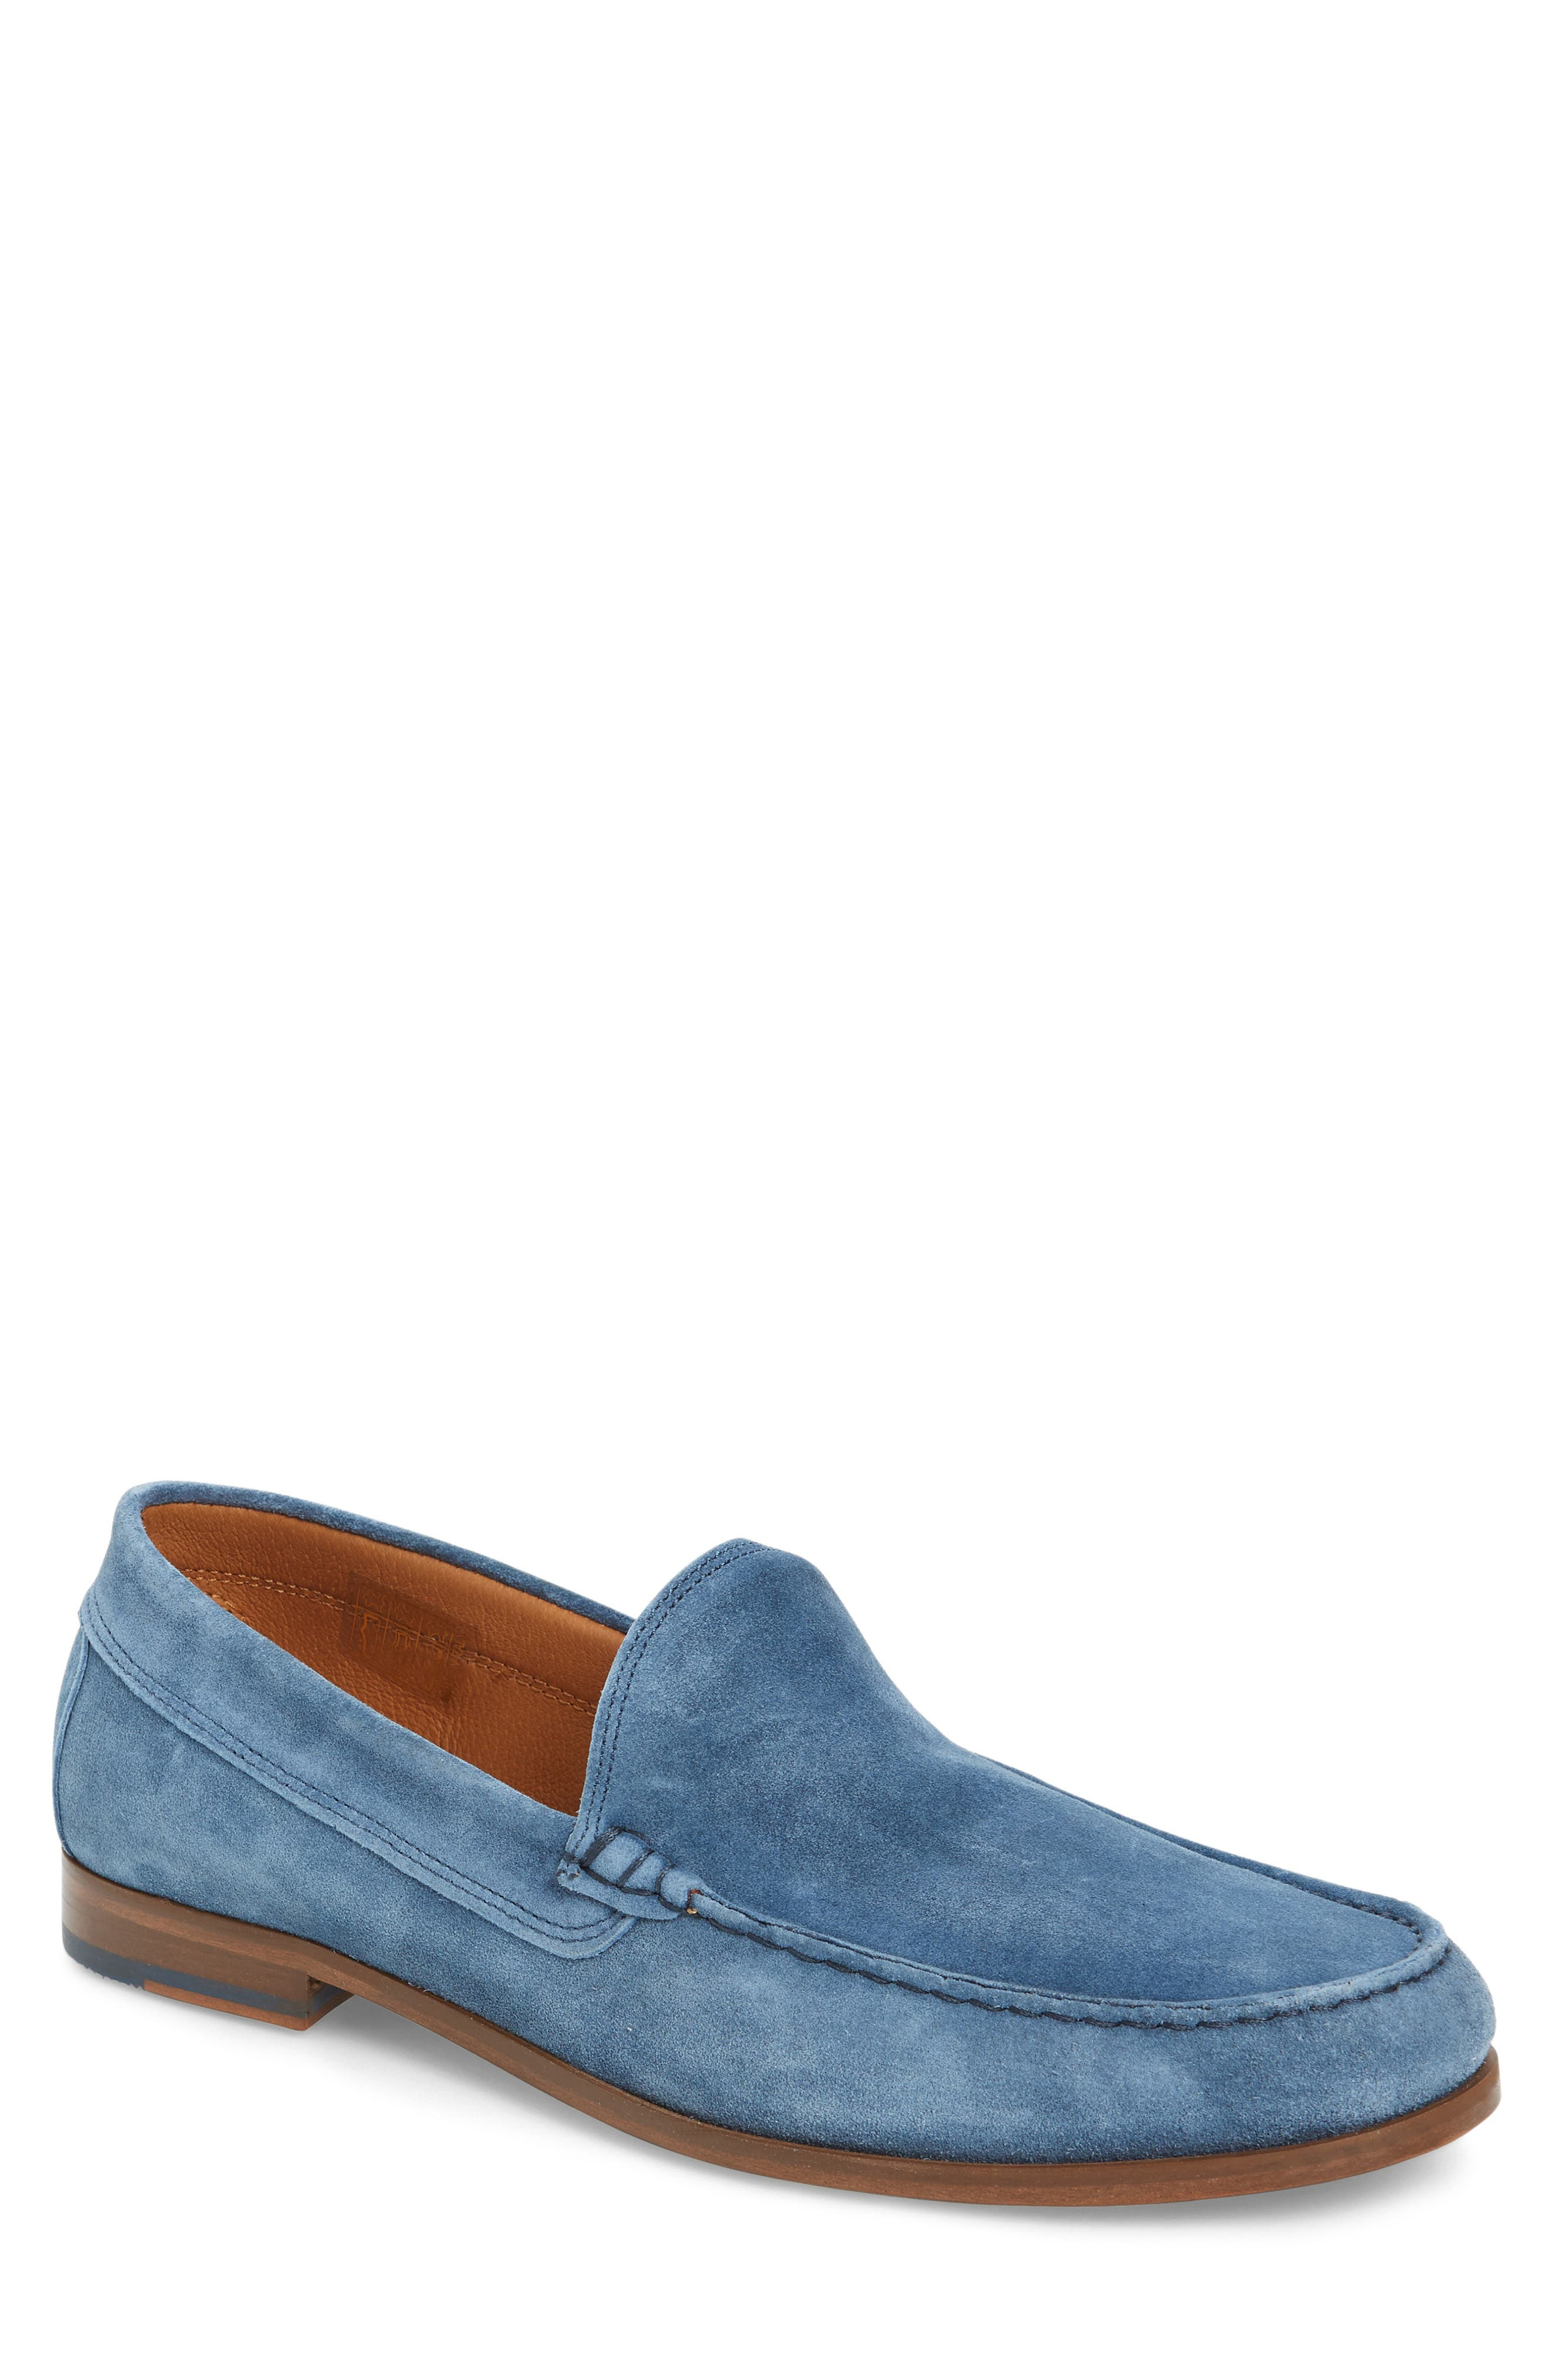 Donald J Pliner 'Nate' Loafer,                             Main thumbnail 4, color,